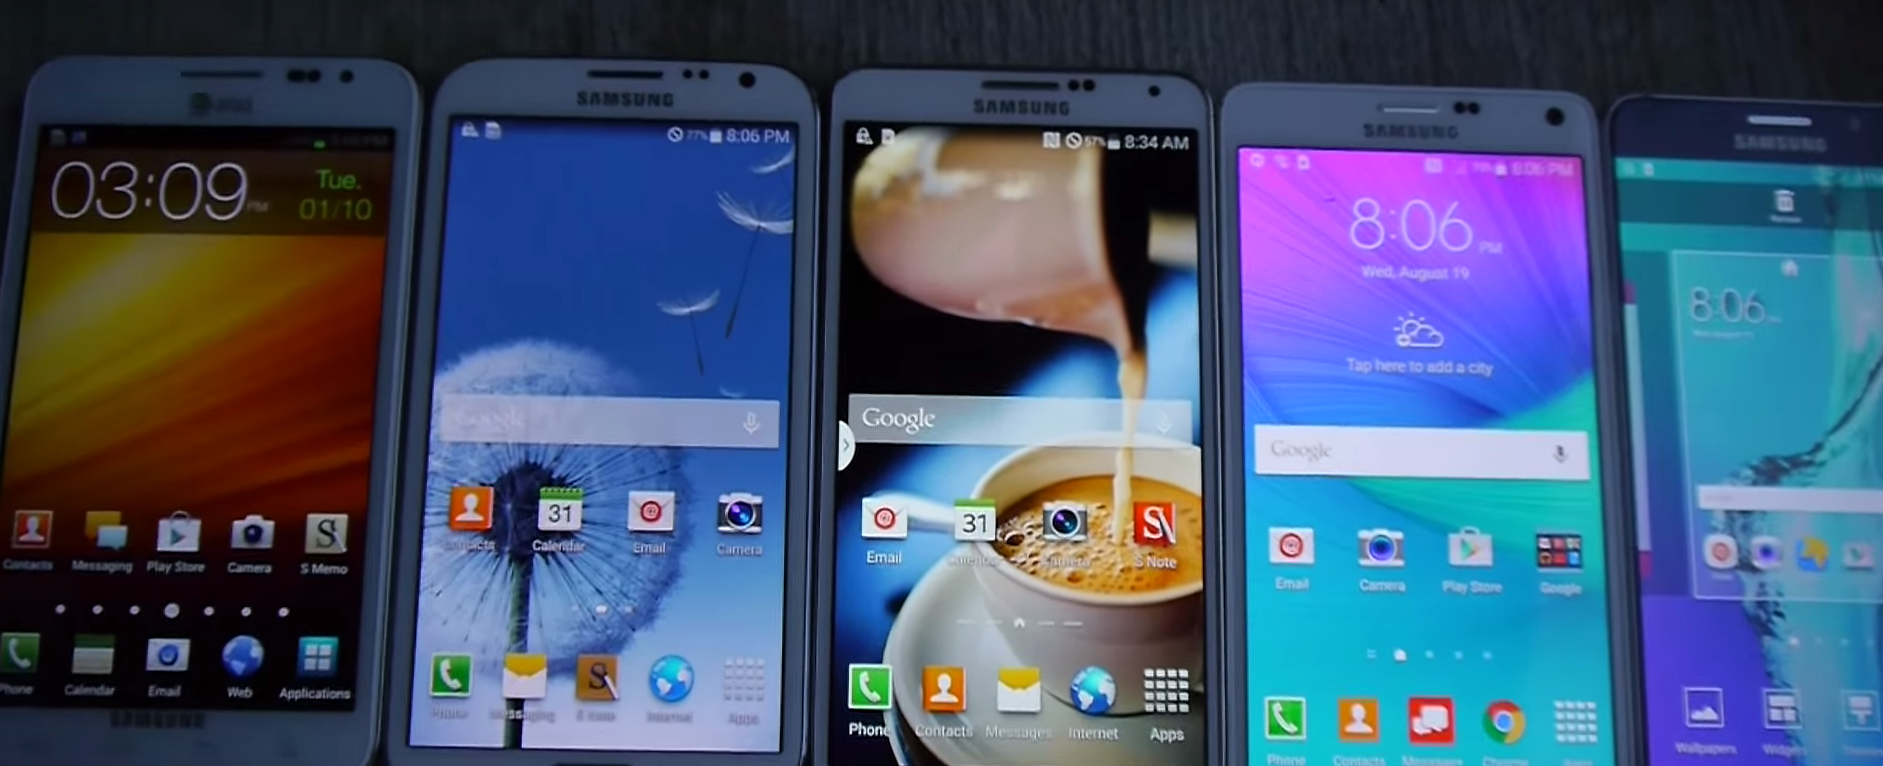 Watch All 5 Samsung Galaxy Note Phones Get Abused In The